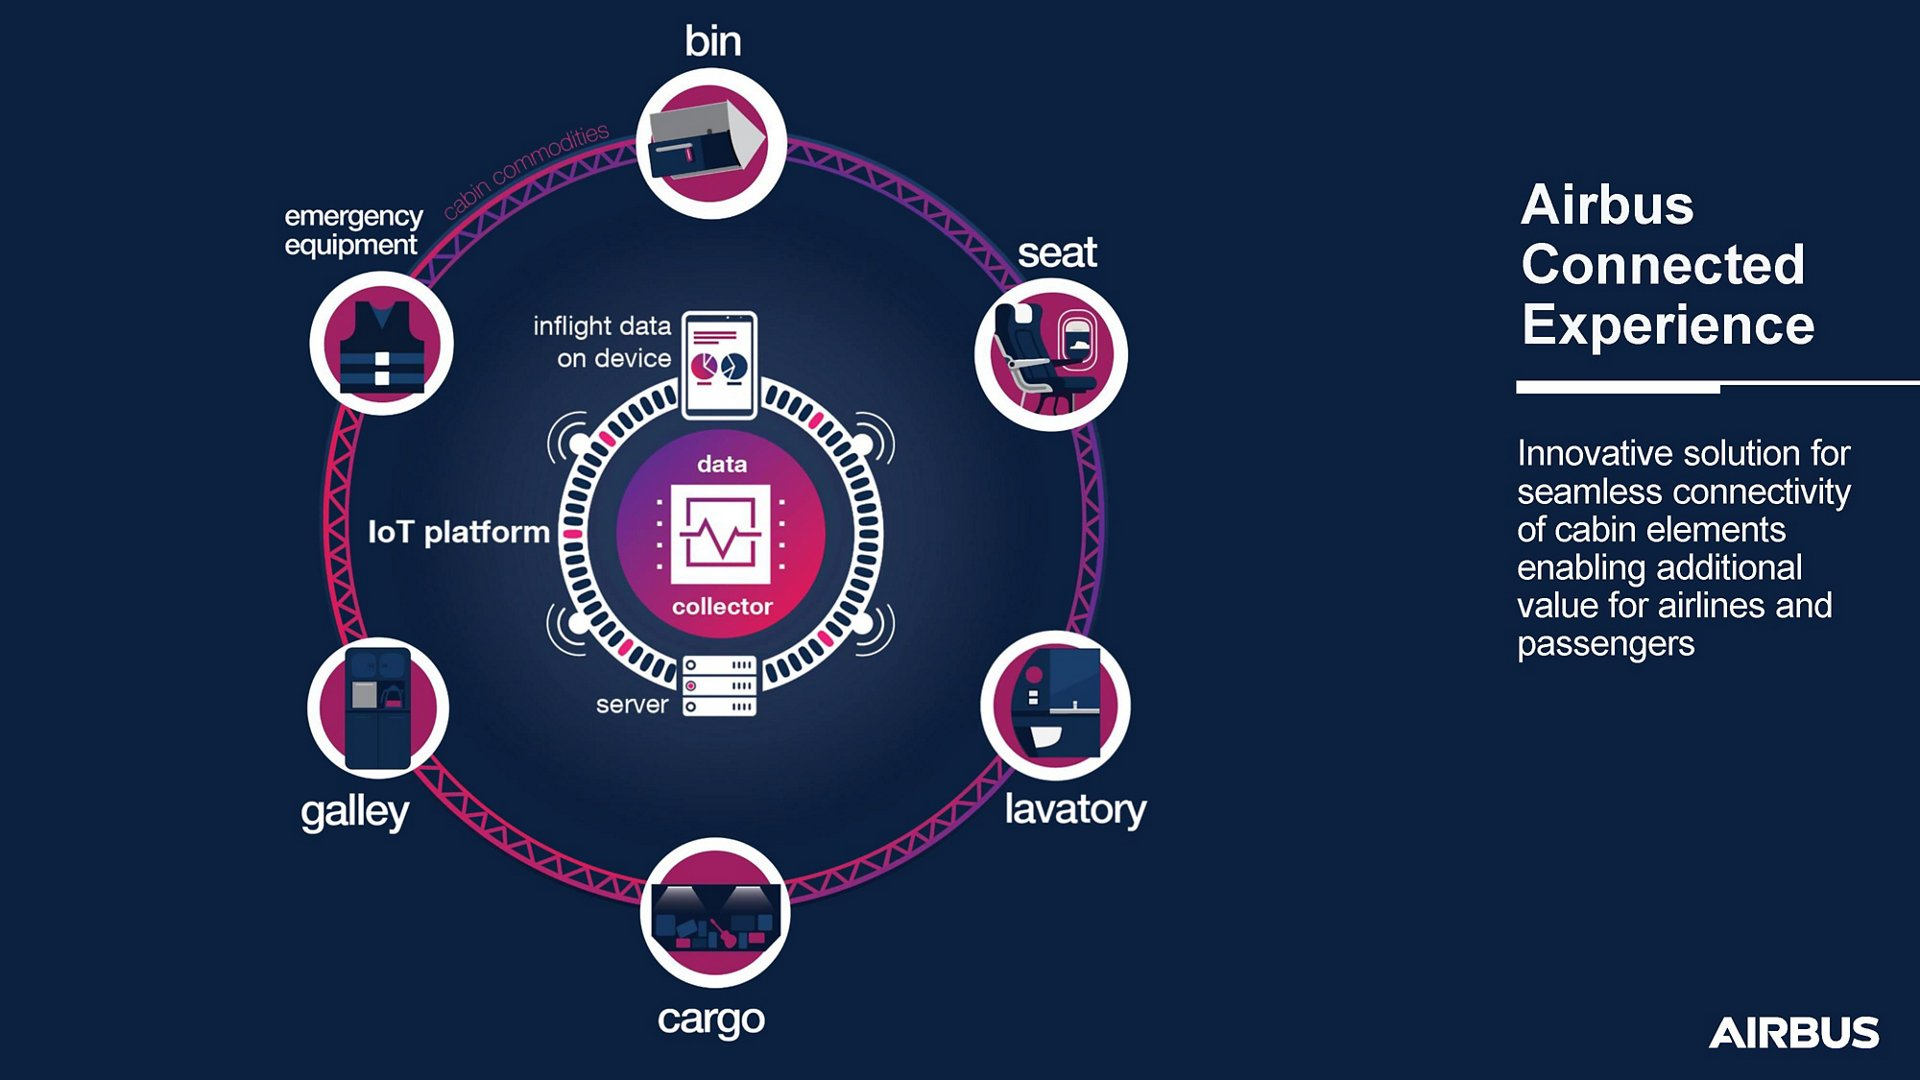 Airbus Connected Experience infographic